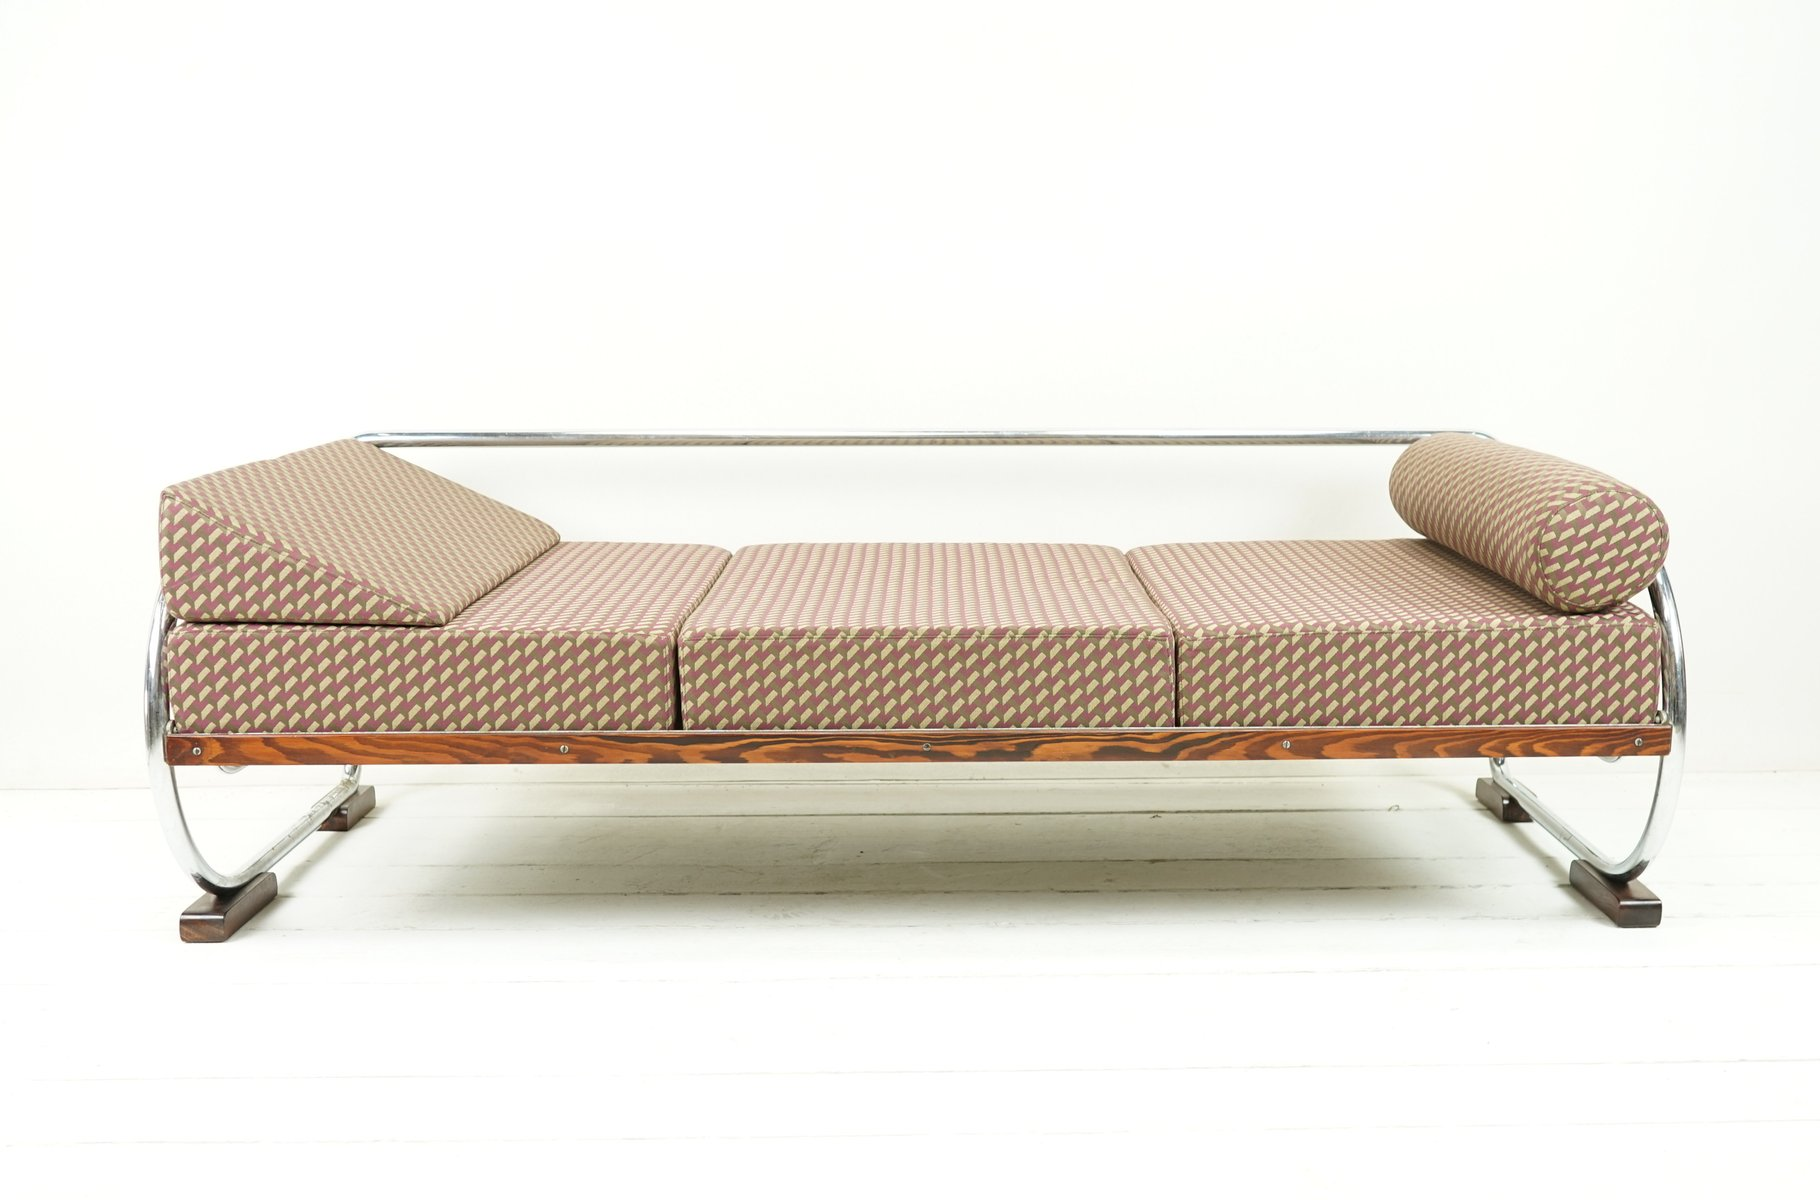 Bauhaus Daybed Sofa In 3D Fabric From Gottwald, 1930s